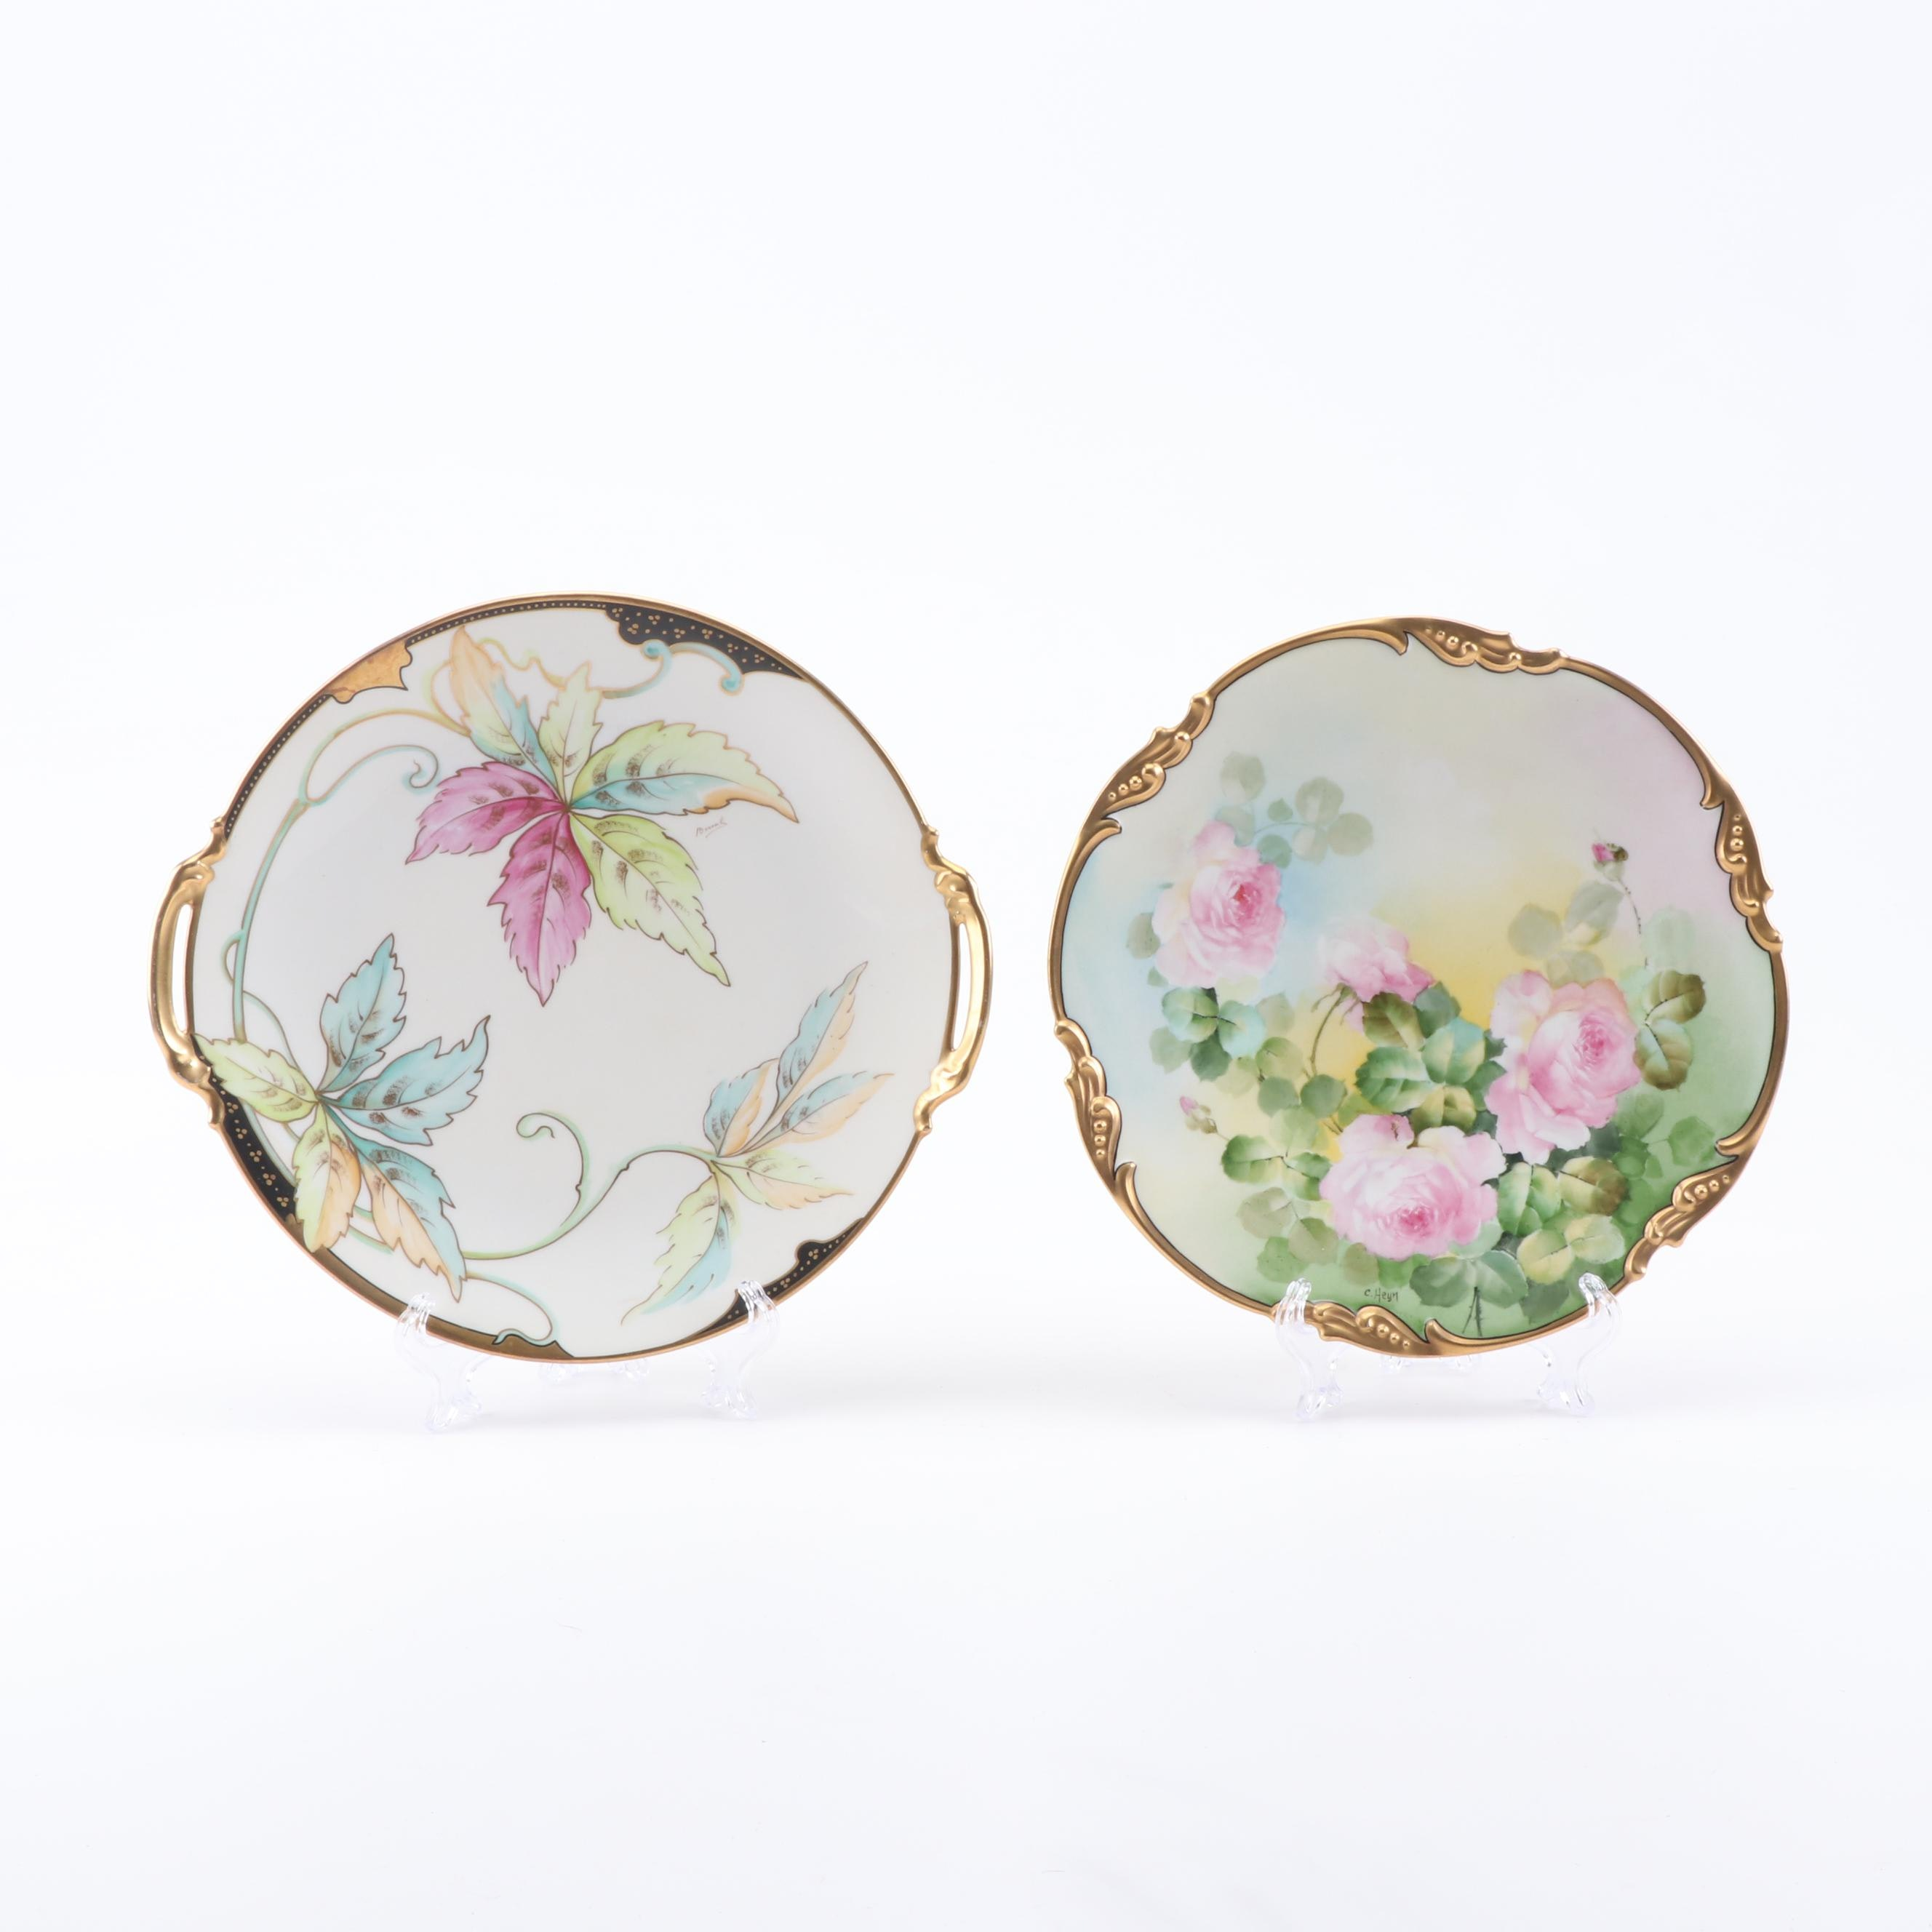 Jean Pouyat and Coiffe Limoges Porcelain Plates, Early 20th Century